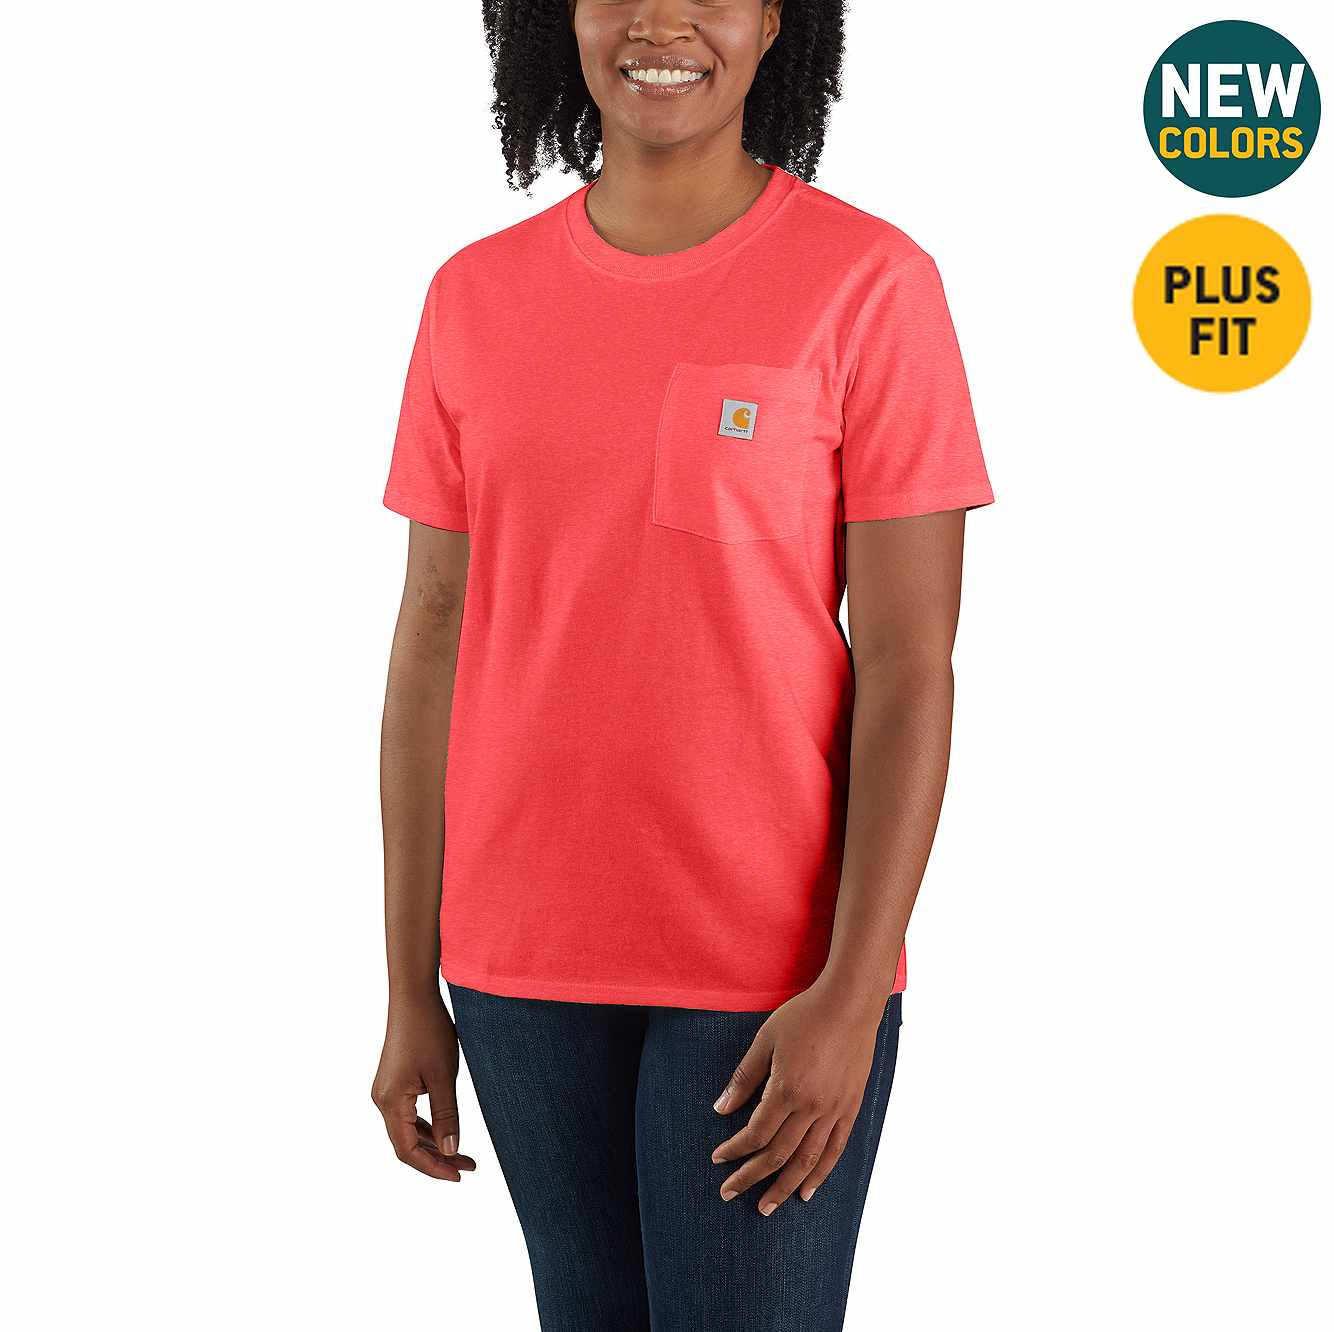 Picture of Women's Loose Fit Heavyweight Short-Sleeve Pocket T-Shirt in Ruby Heather